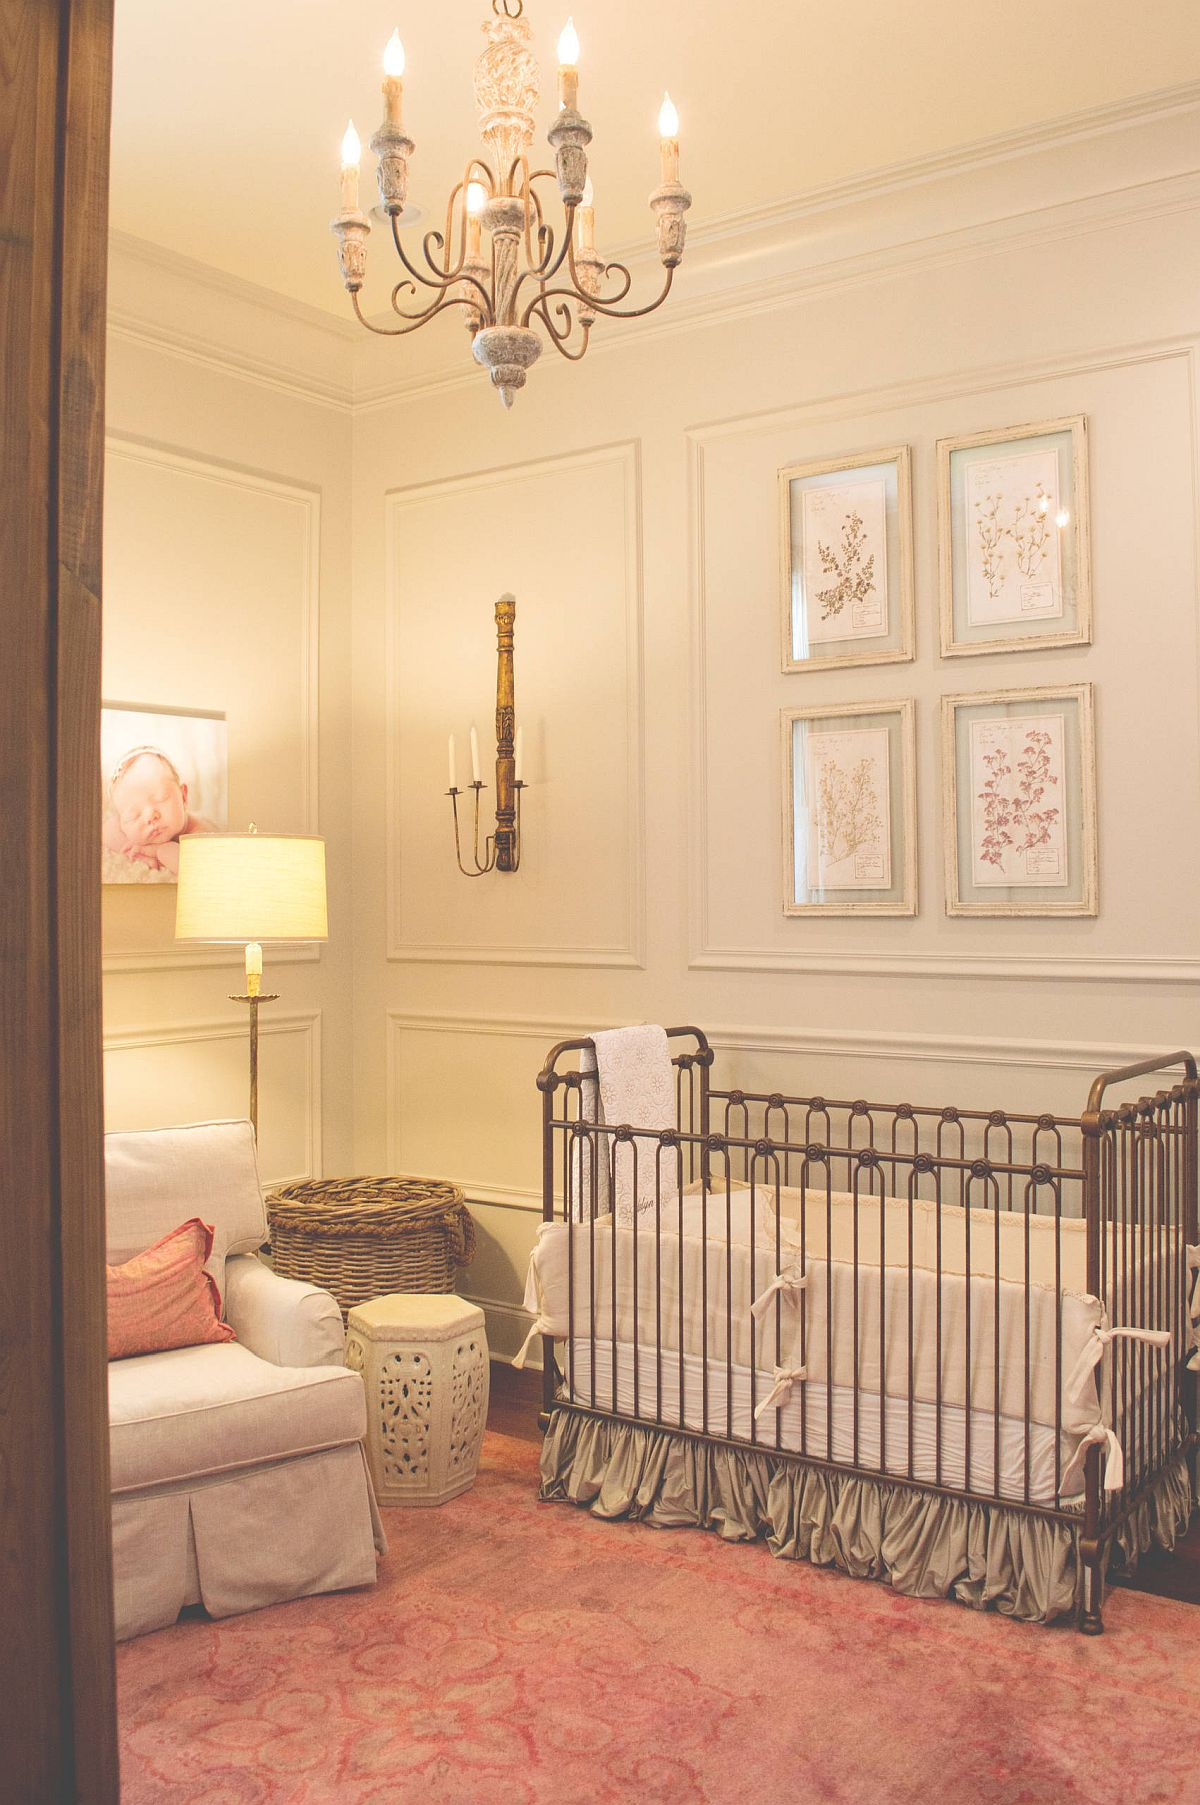 Light pinkish-orange accents and rug add an understated colorful charm to this traditional nursery